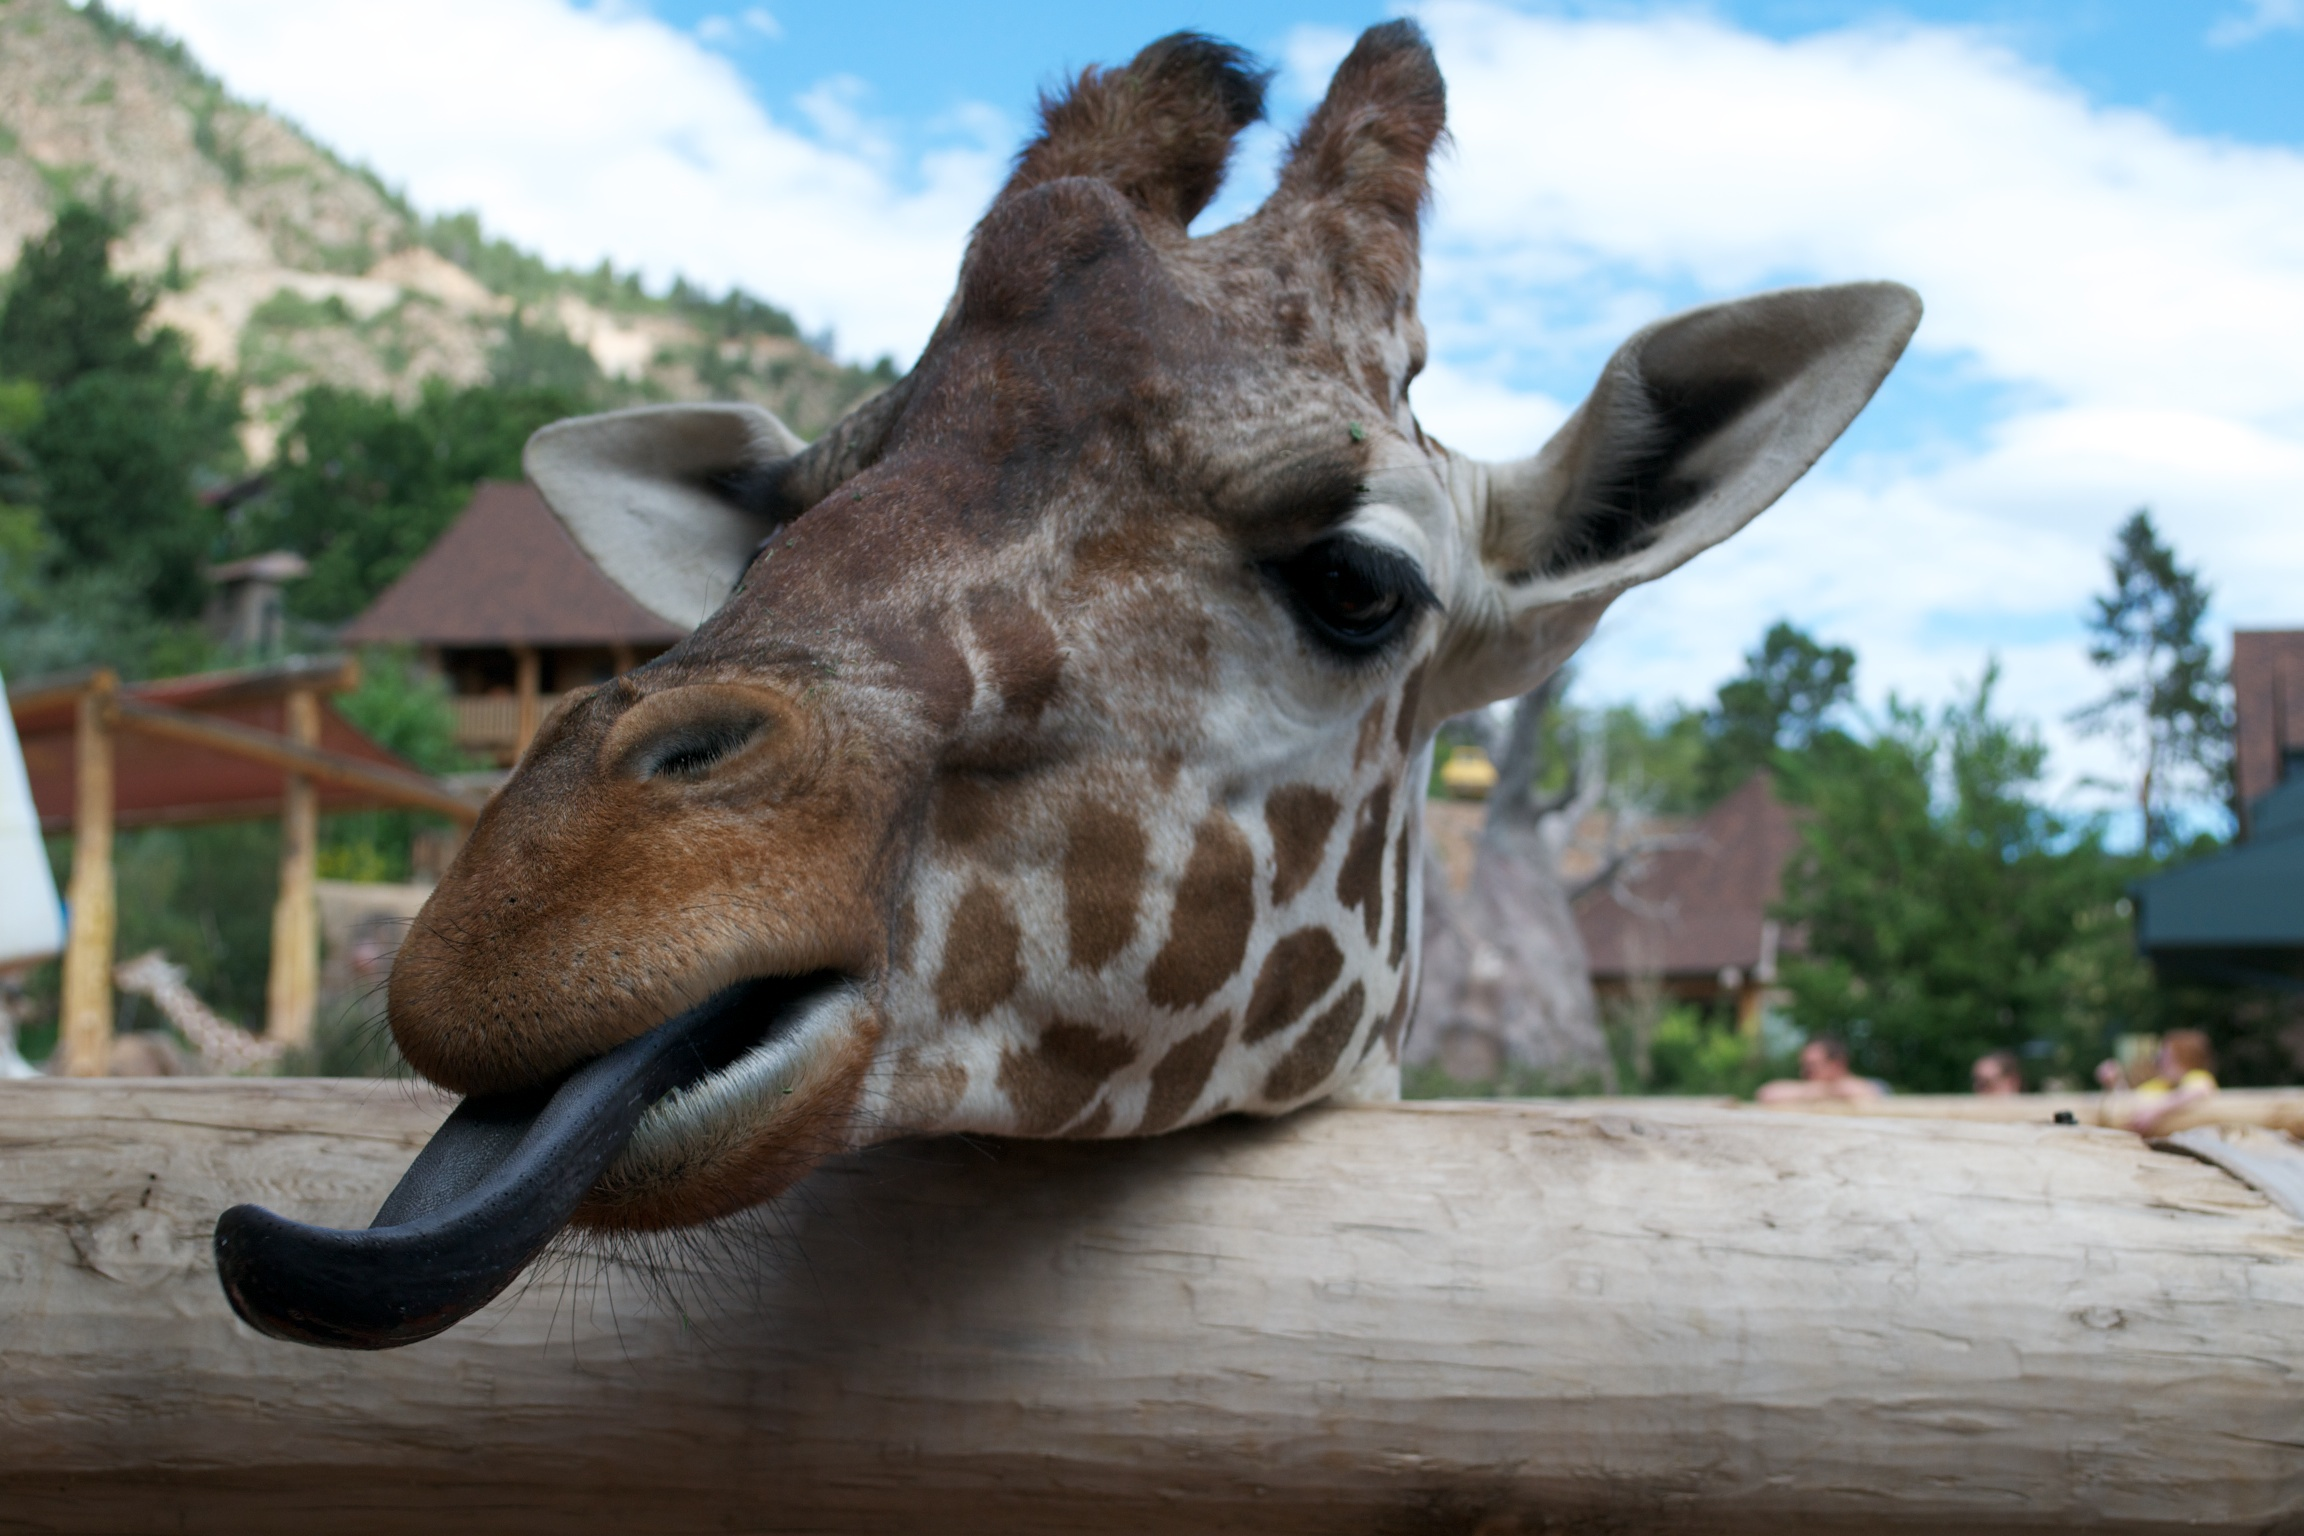 A Sunday Morning at the Cheyenne Mountain Zoo